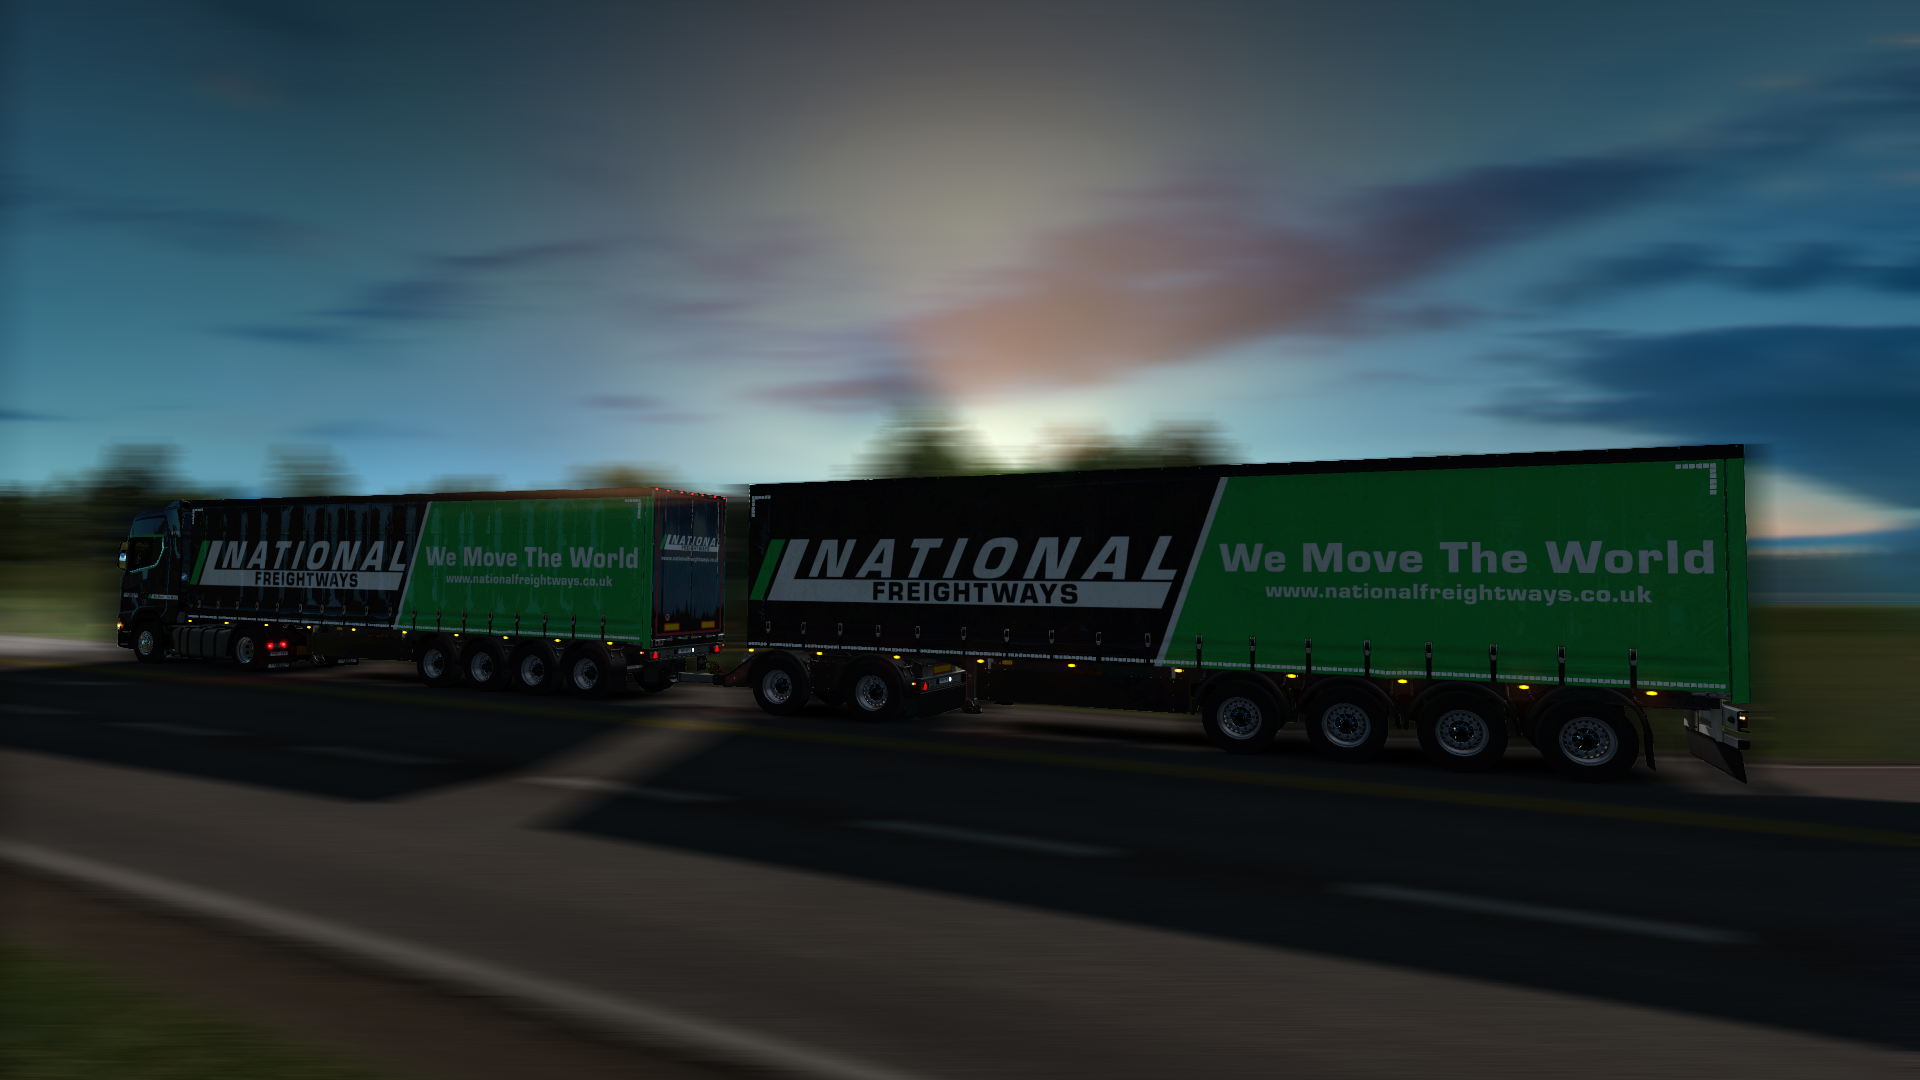 ets2_20181204_190132_00.png